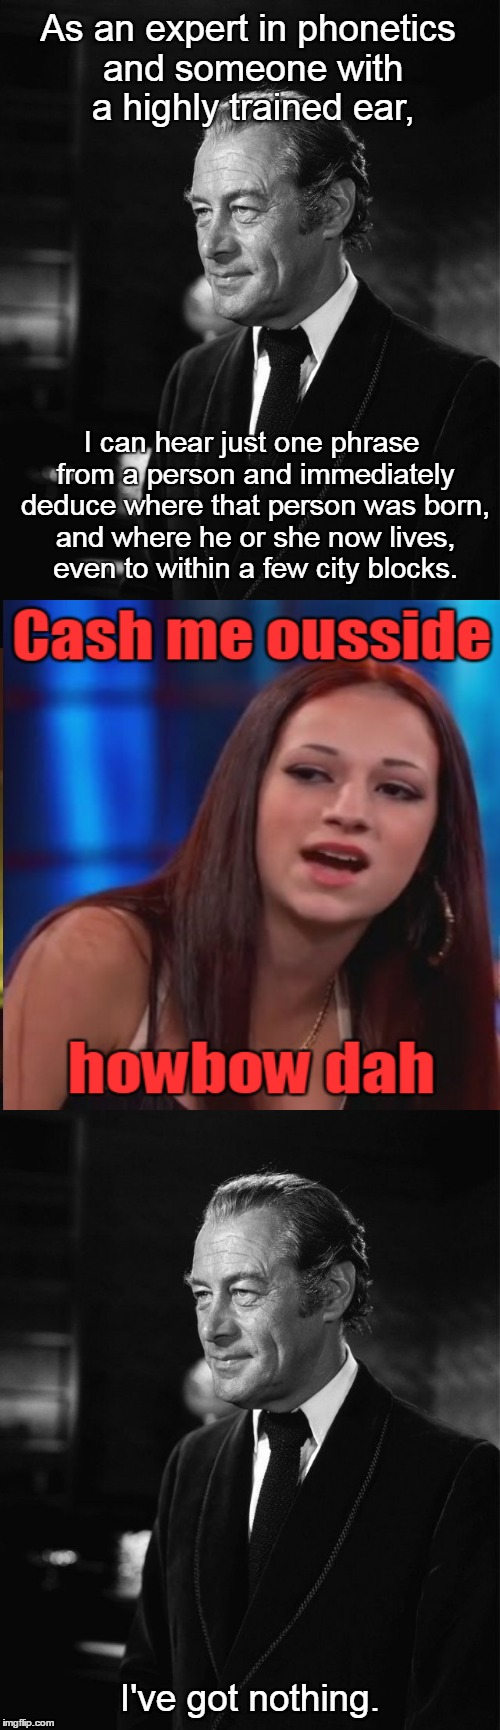 Not My Fair Lady! (❛‿❛✿) | As an expert in phonetics and someone with a highly trained ear, I've got nothing. I can hear just one phrase from a person and immediately  | image tagged in memes,cash me ousside,cash me ousside how bow dah,professor henry higgins,my fair lady,pygmalion | made w/ Imgflip meme maker